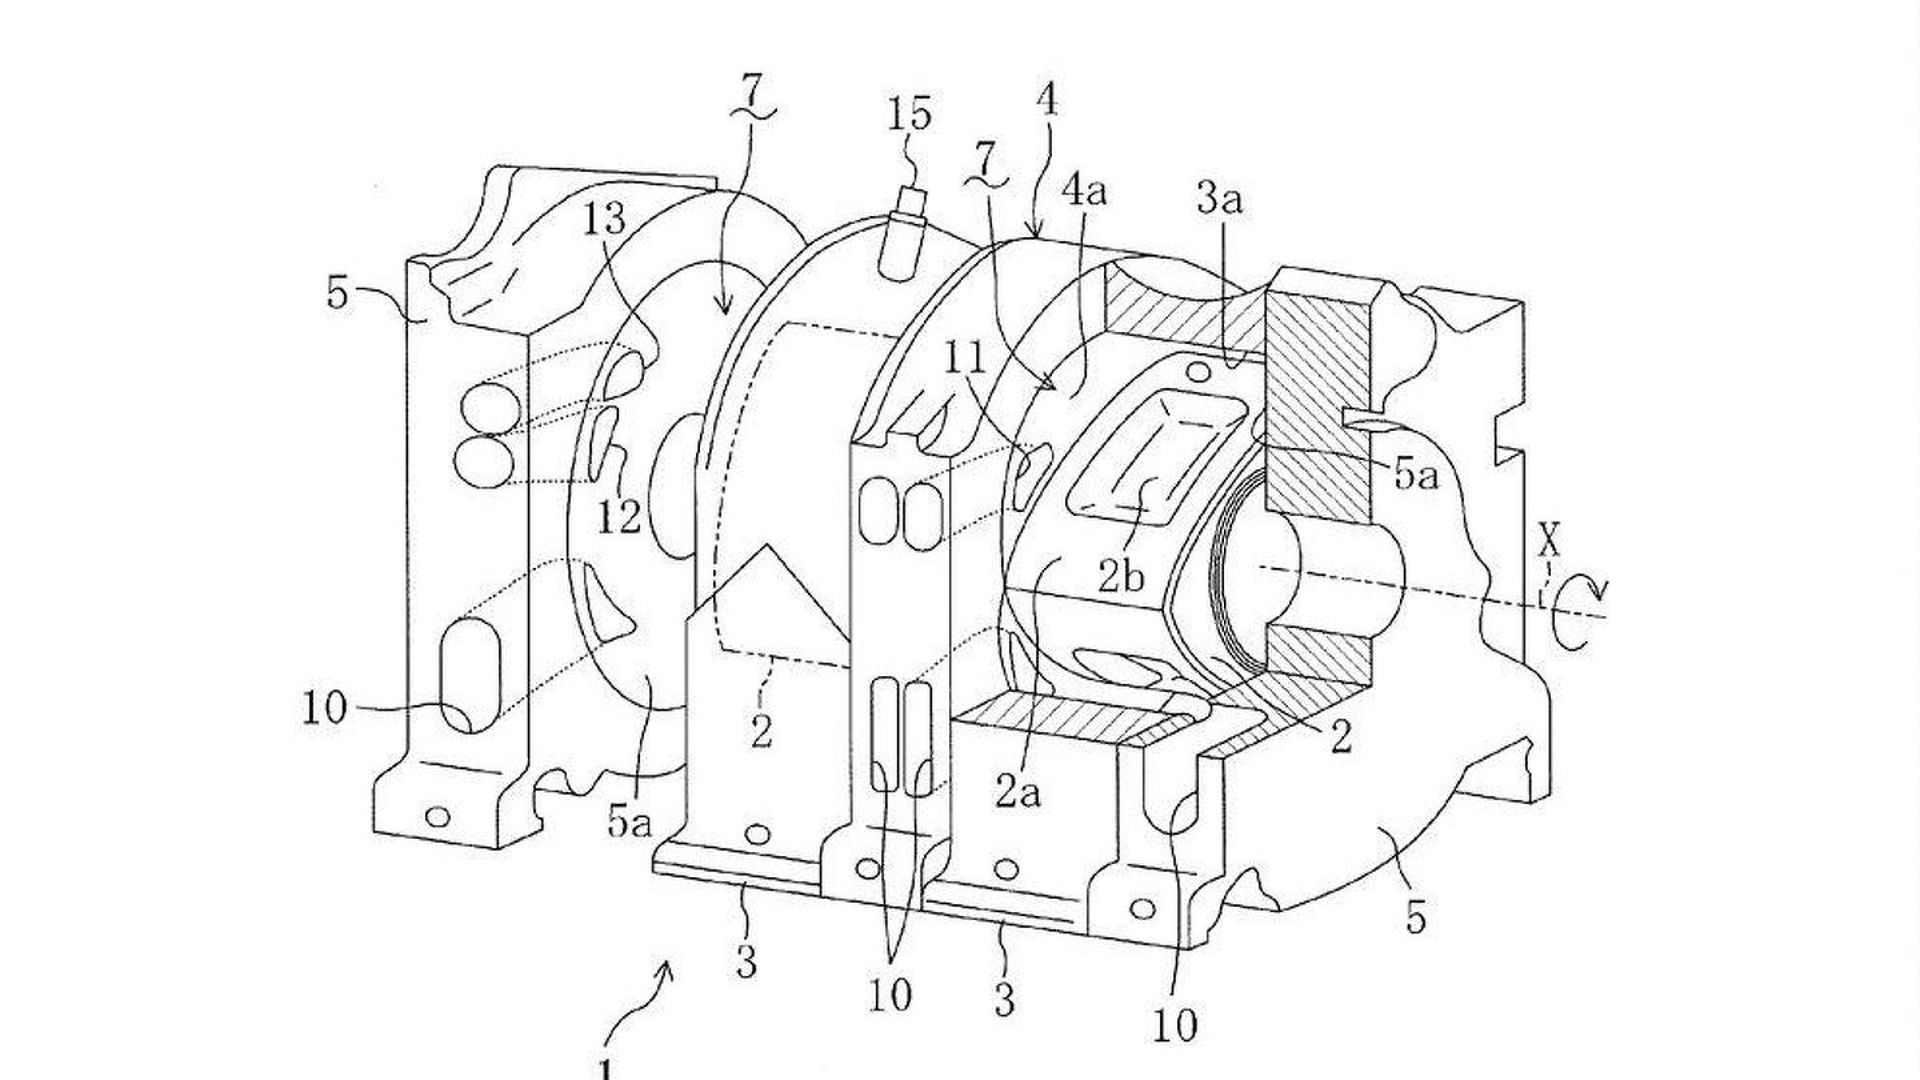 Rotary Rotary Engine Diagram 20B Rotary Engine Diagram 13b Rotary Engine  Diagram